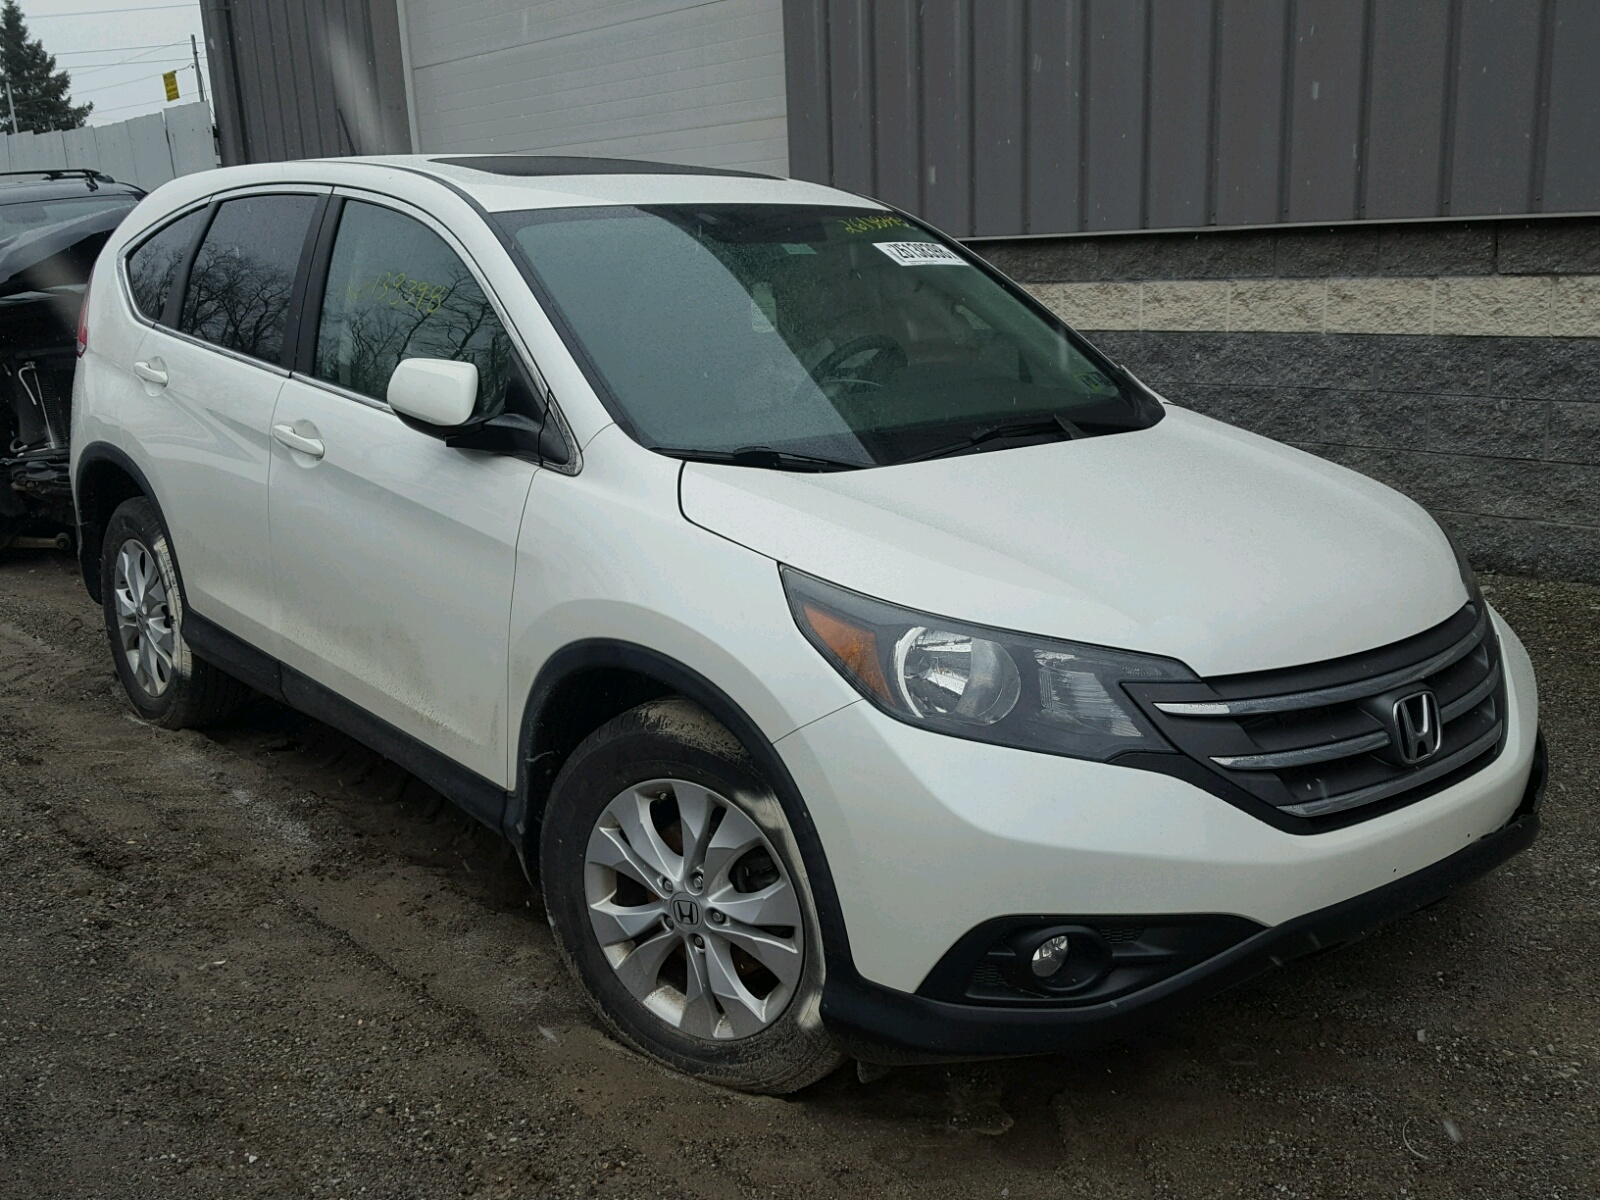 Auto Auction Ended On Vin 1hgcg16542a032403 2002 Honda